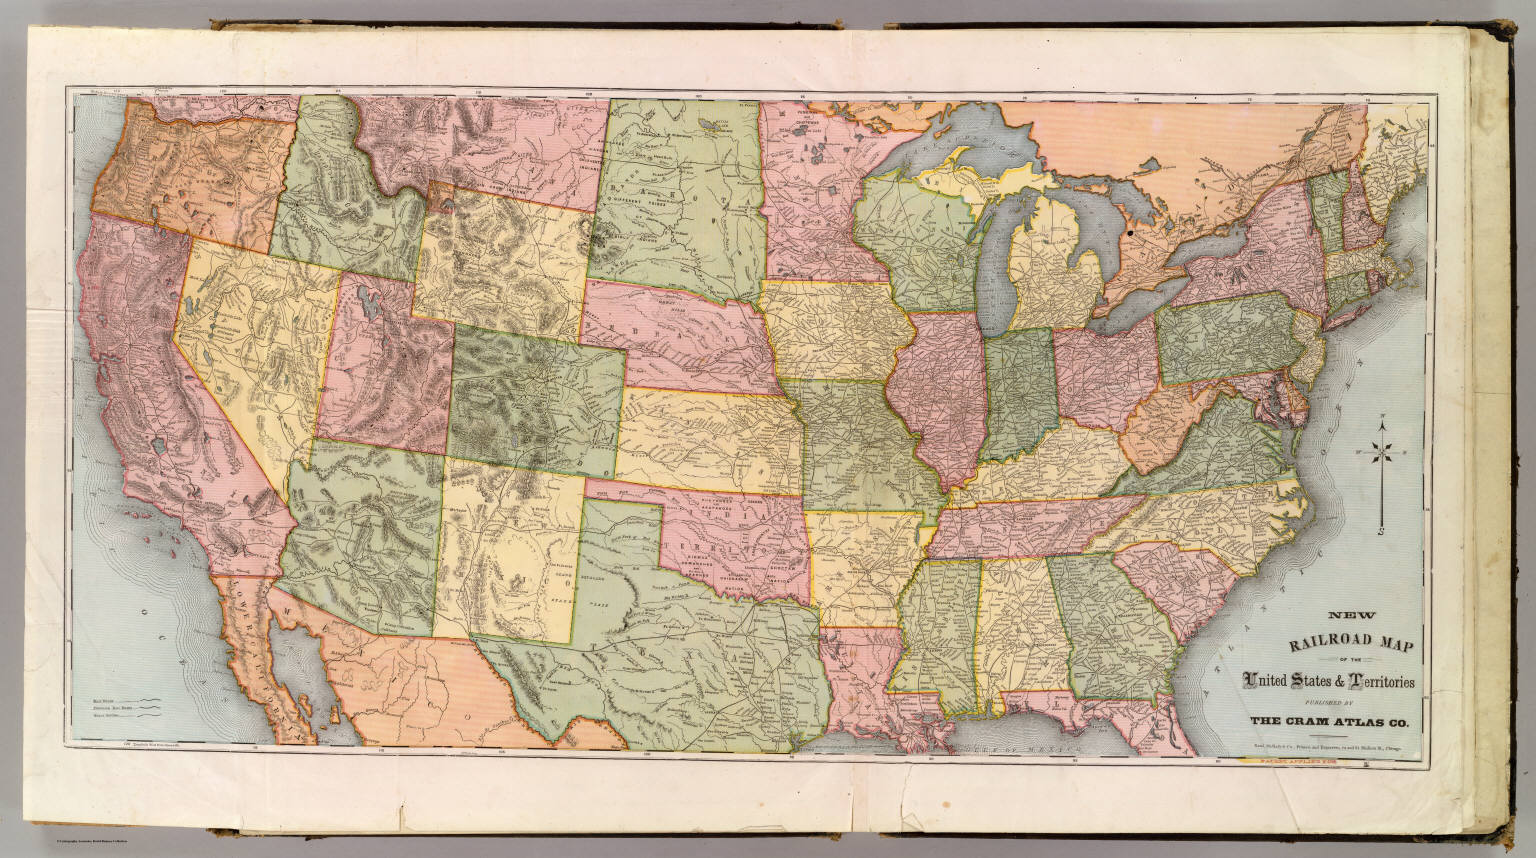 Picture of: New Railroad Map Of The United States Territories David Rumsey Historical Map Collection